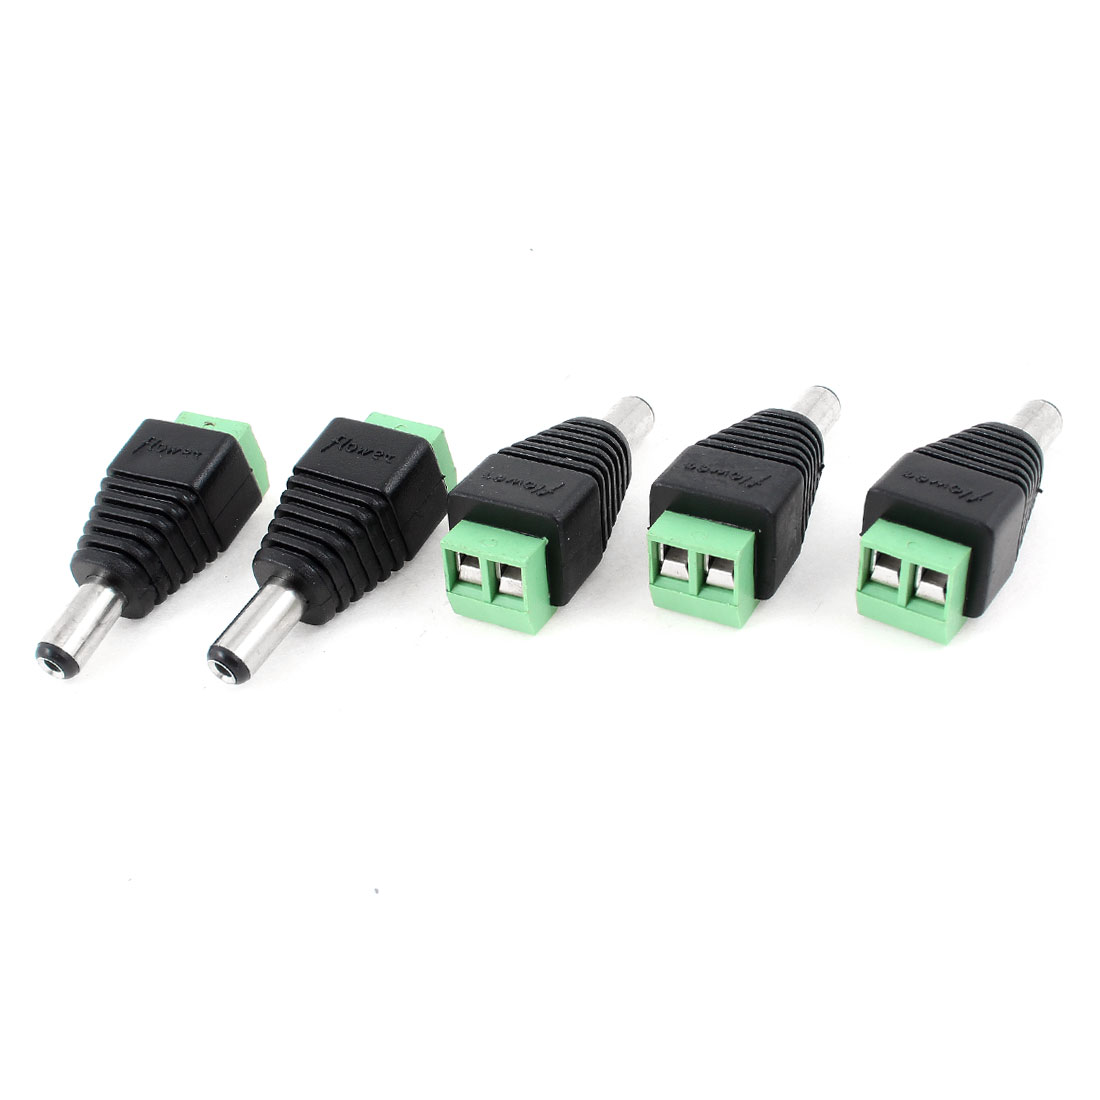 2.1mm x 5.5mm Male Jack DC Male Power Cable Plug Connector for CCTV Camera